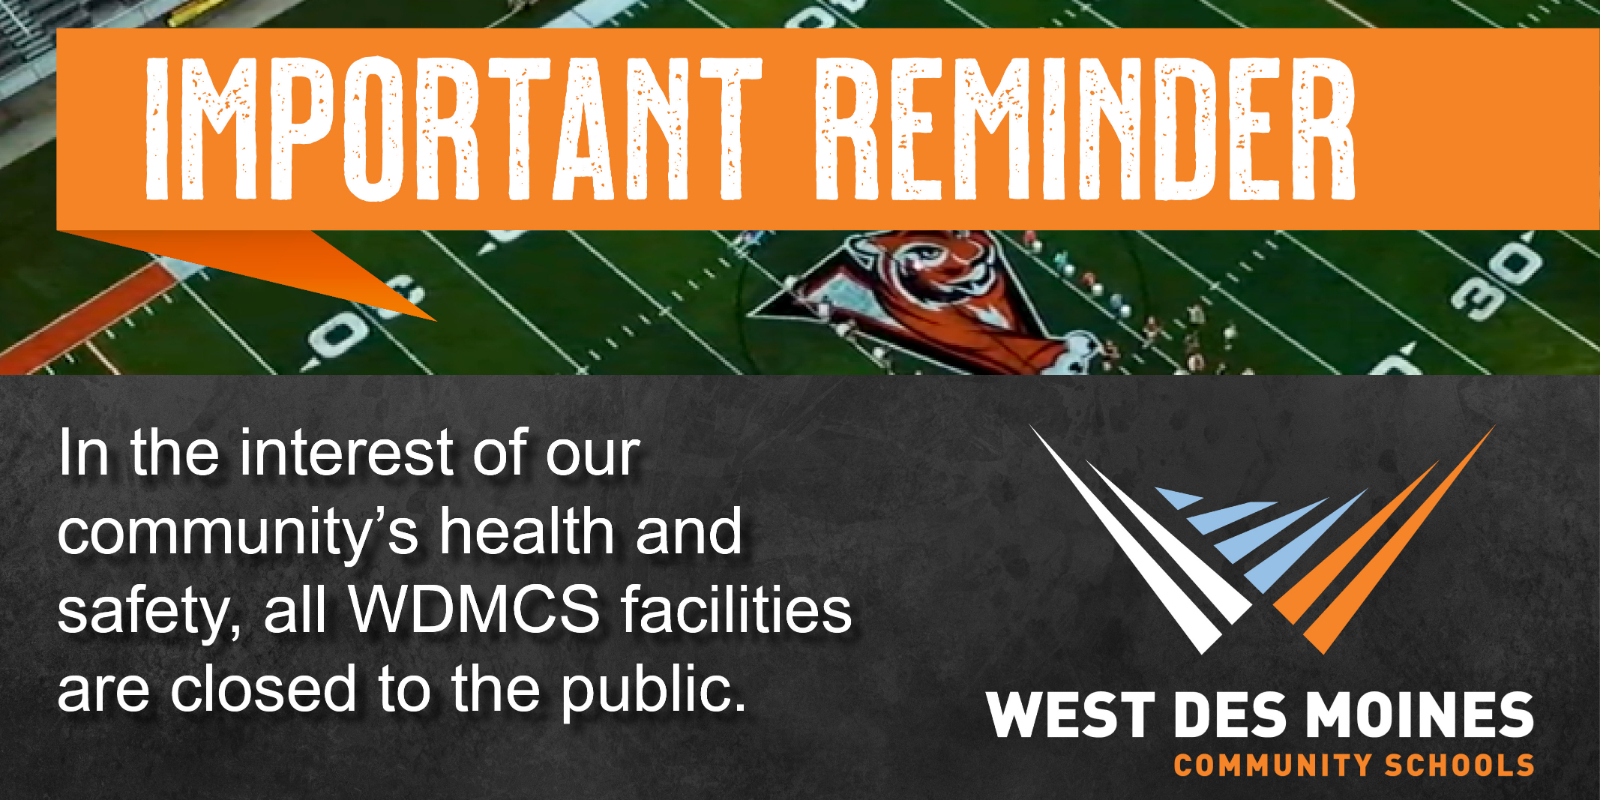 All WDMCS Facilities Closed To Public